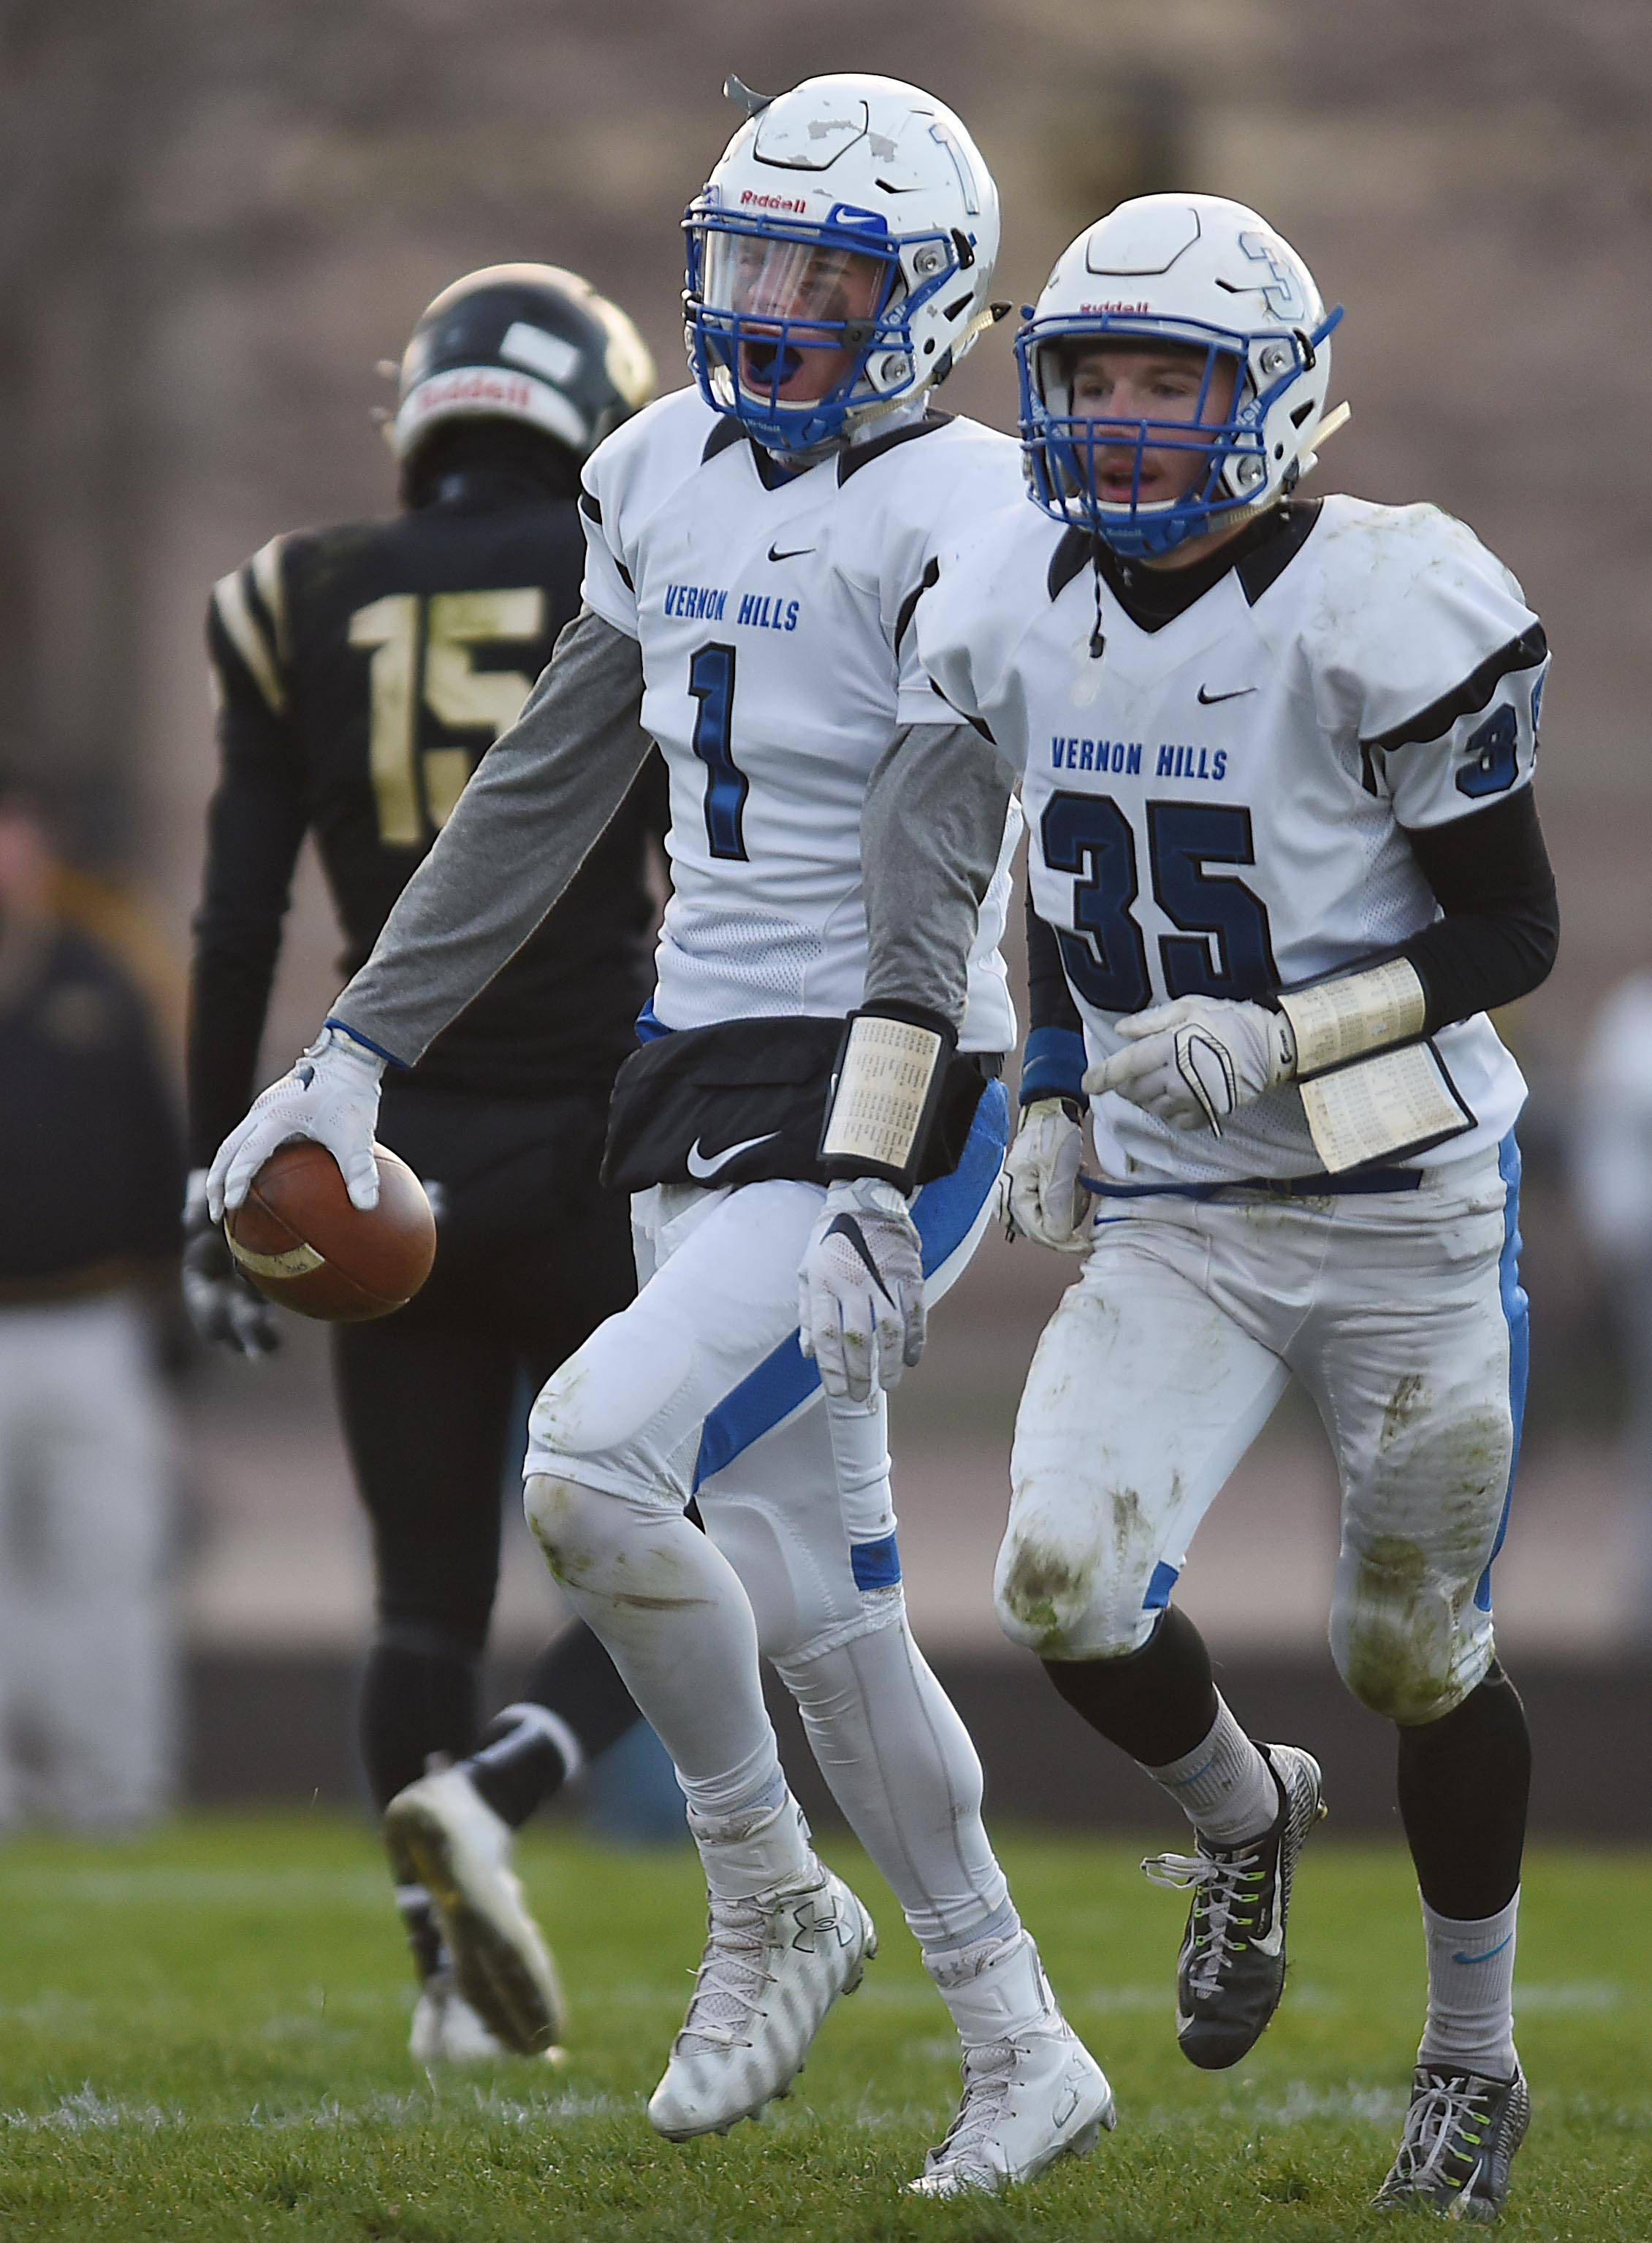 Vernon Hills' Chris Mariella laughs and yells after intercepting a Sycamore pass with just over four minutes left Saturday in the Class 5A football state semifinals in Sycamore. With him is teammate Trey Hommer.